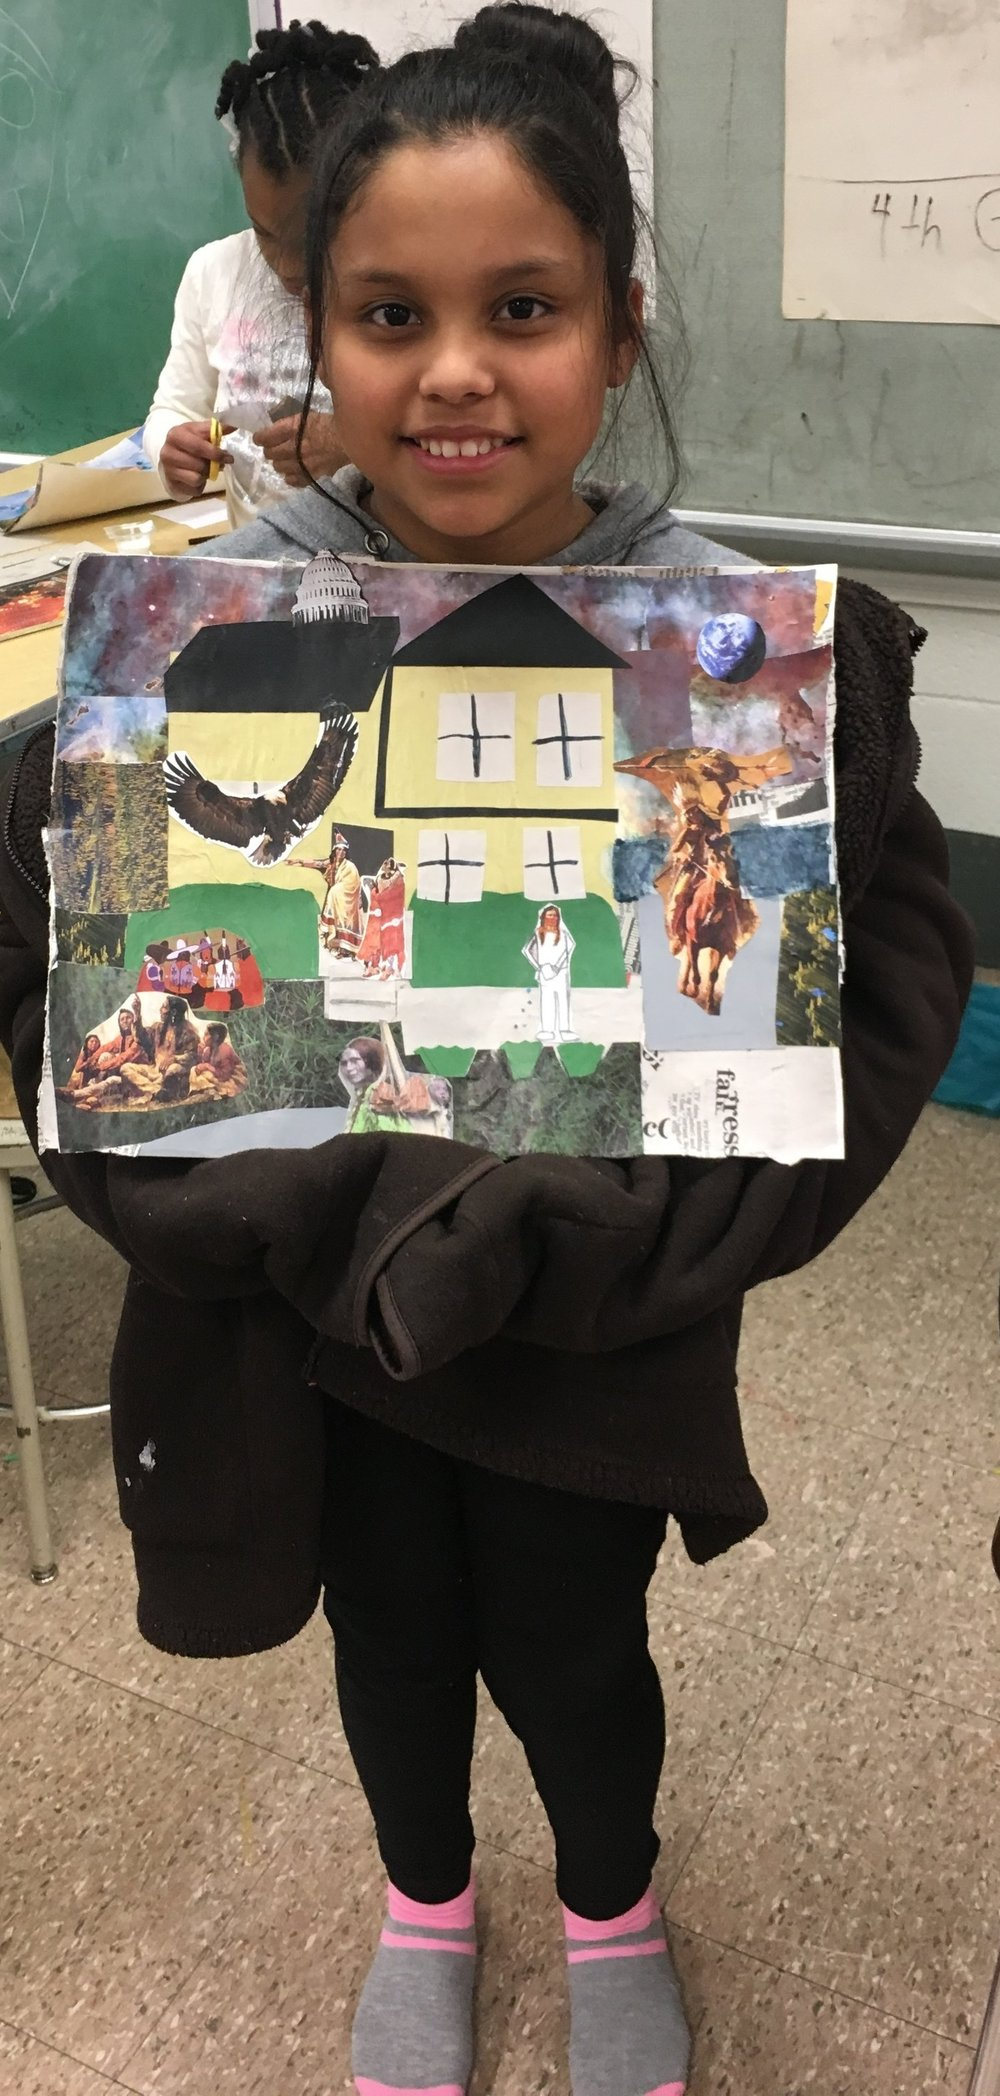 Here are more personal photos of when CFAC instructor Julia had King Elementary 4th & 5th-grade students look at Romare Bearden's collage paintings, then discussed how to make a landscape of their home.  They talked about historical figures and heroes, and what those heroes would be wearing and doing if they lived in their neighborhood. This is mainly a collage project but students were allowed to expand into other materials once they covered the whole page.